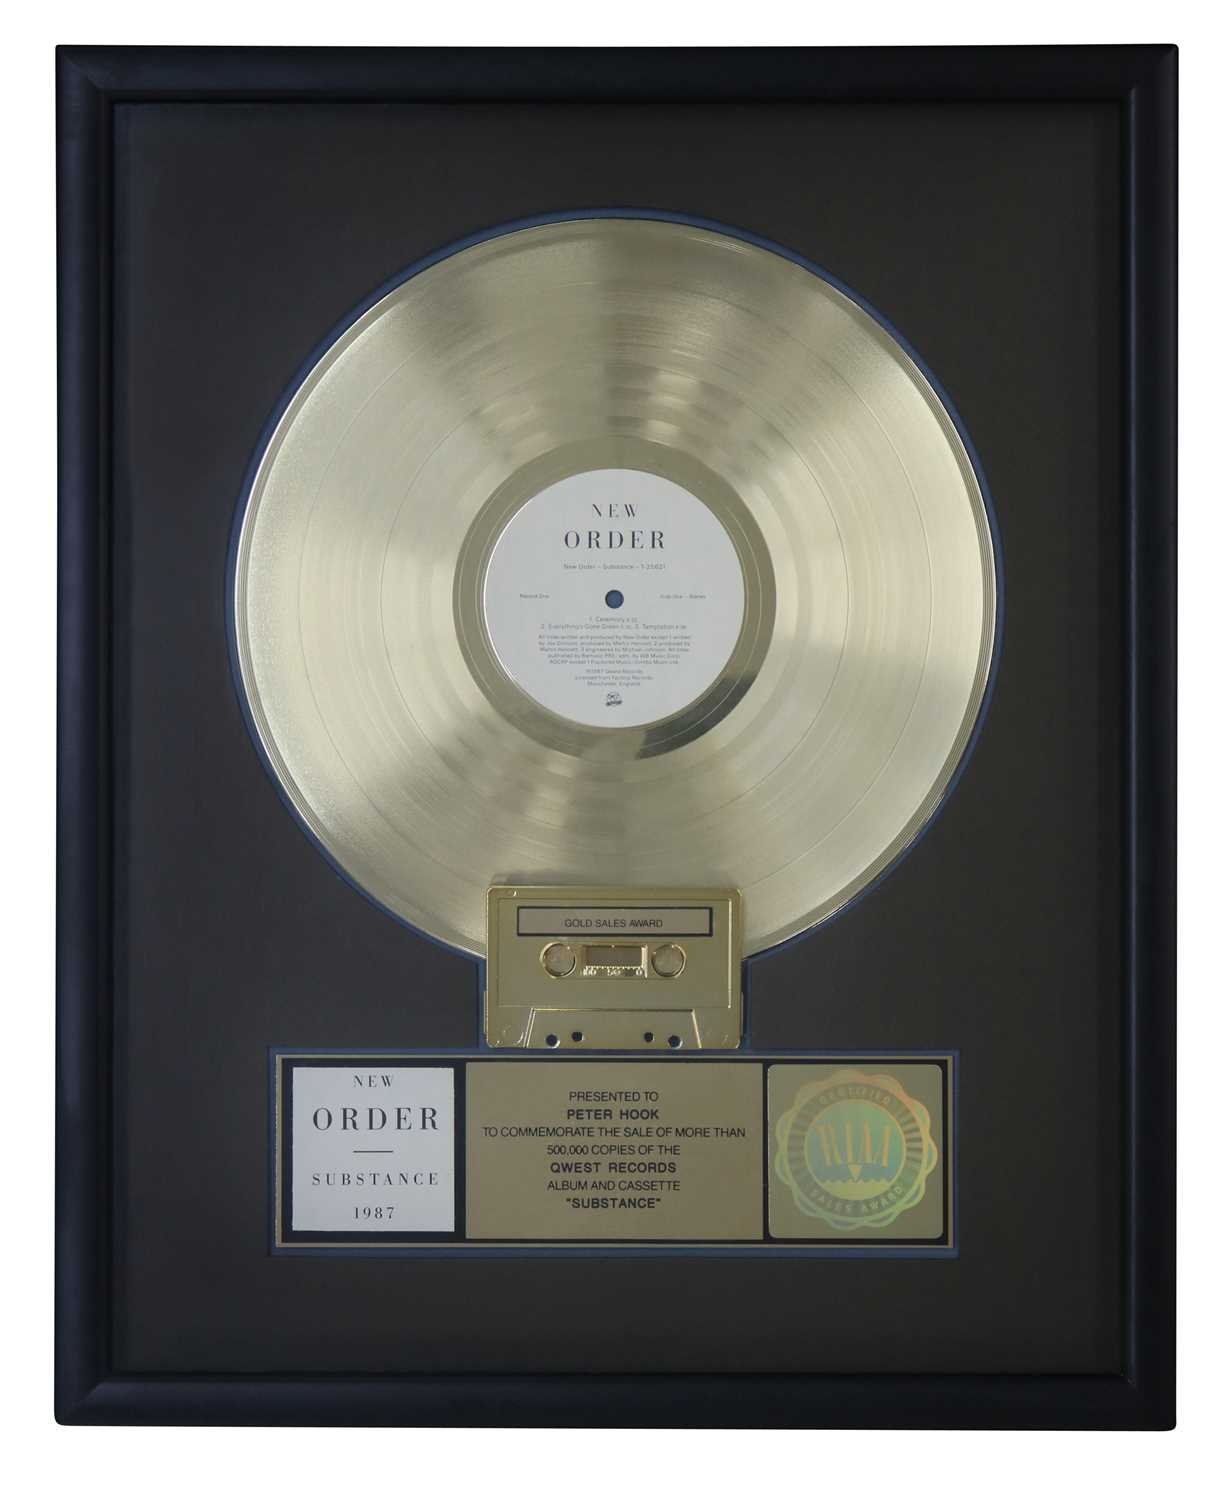 Lot 39 - NEW ORDER RIAA GOLD AWARD FOR SUBSTANCE